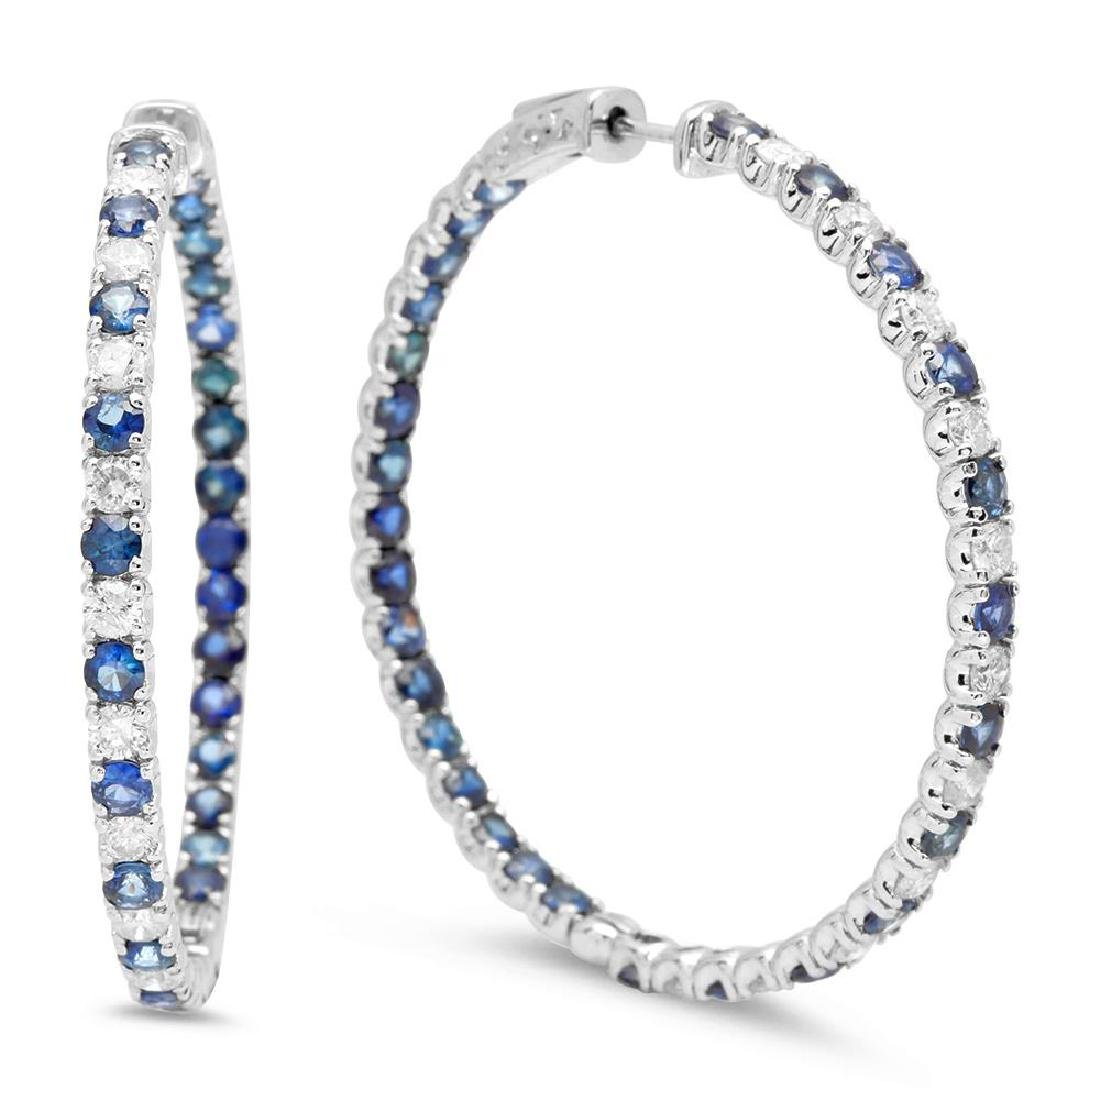 14K Gold 7.86ct Sapphire 2.32cts Diamond Earrings